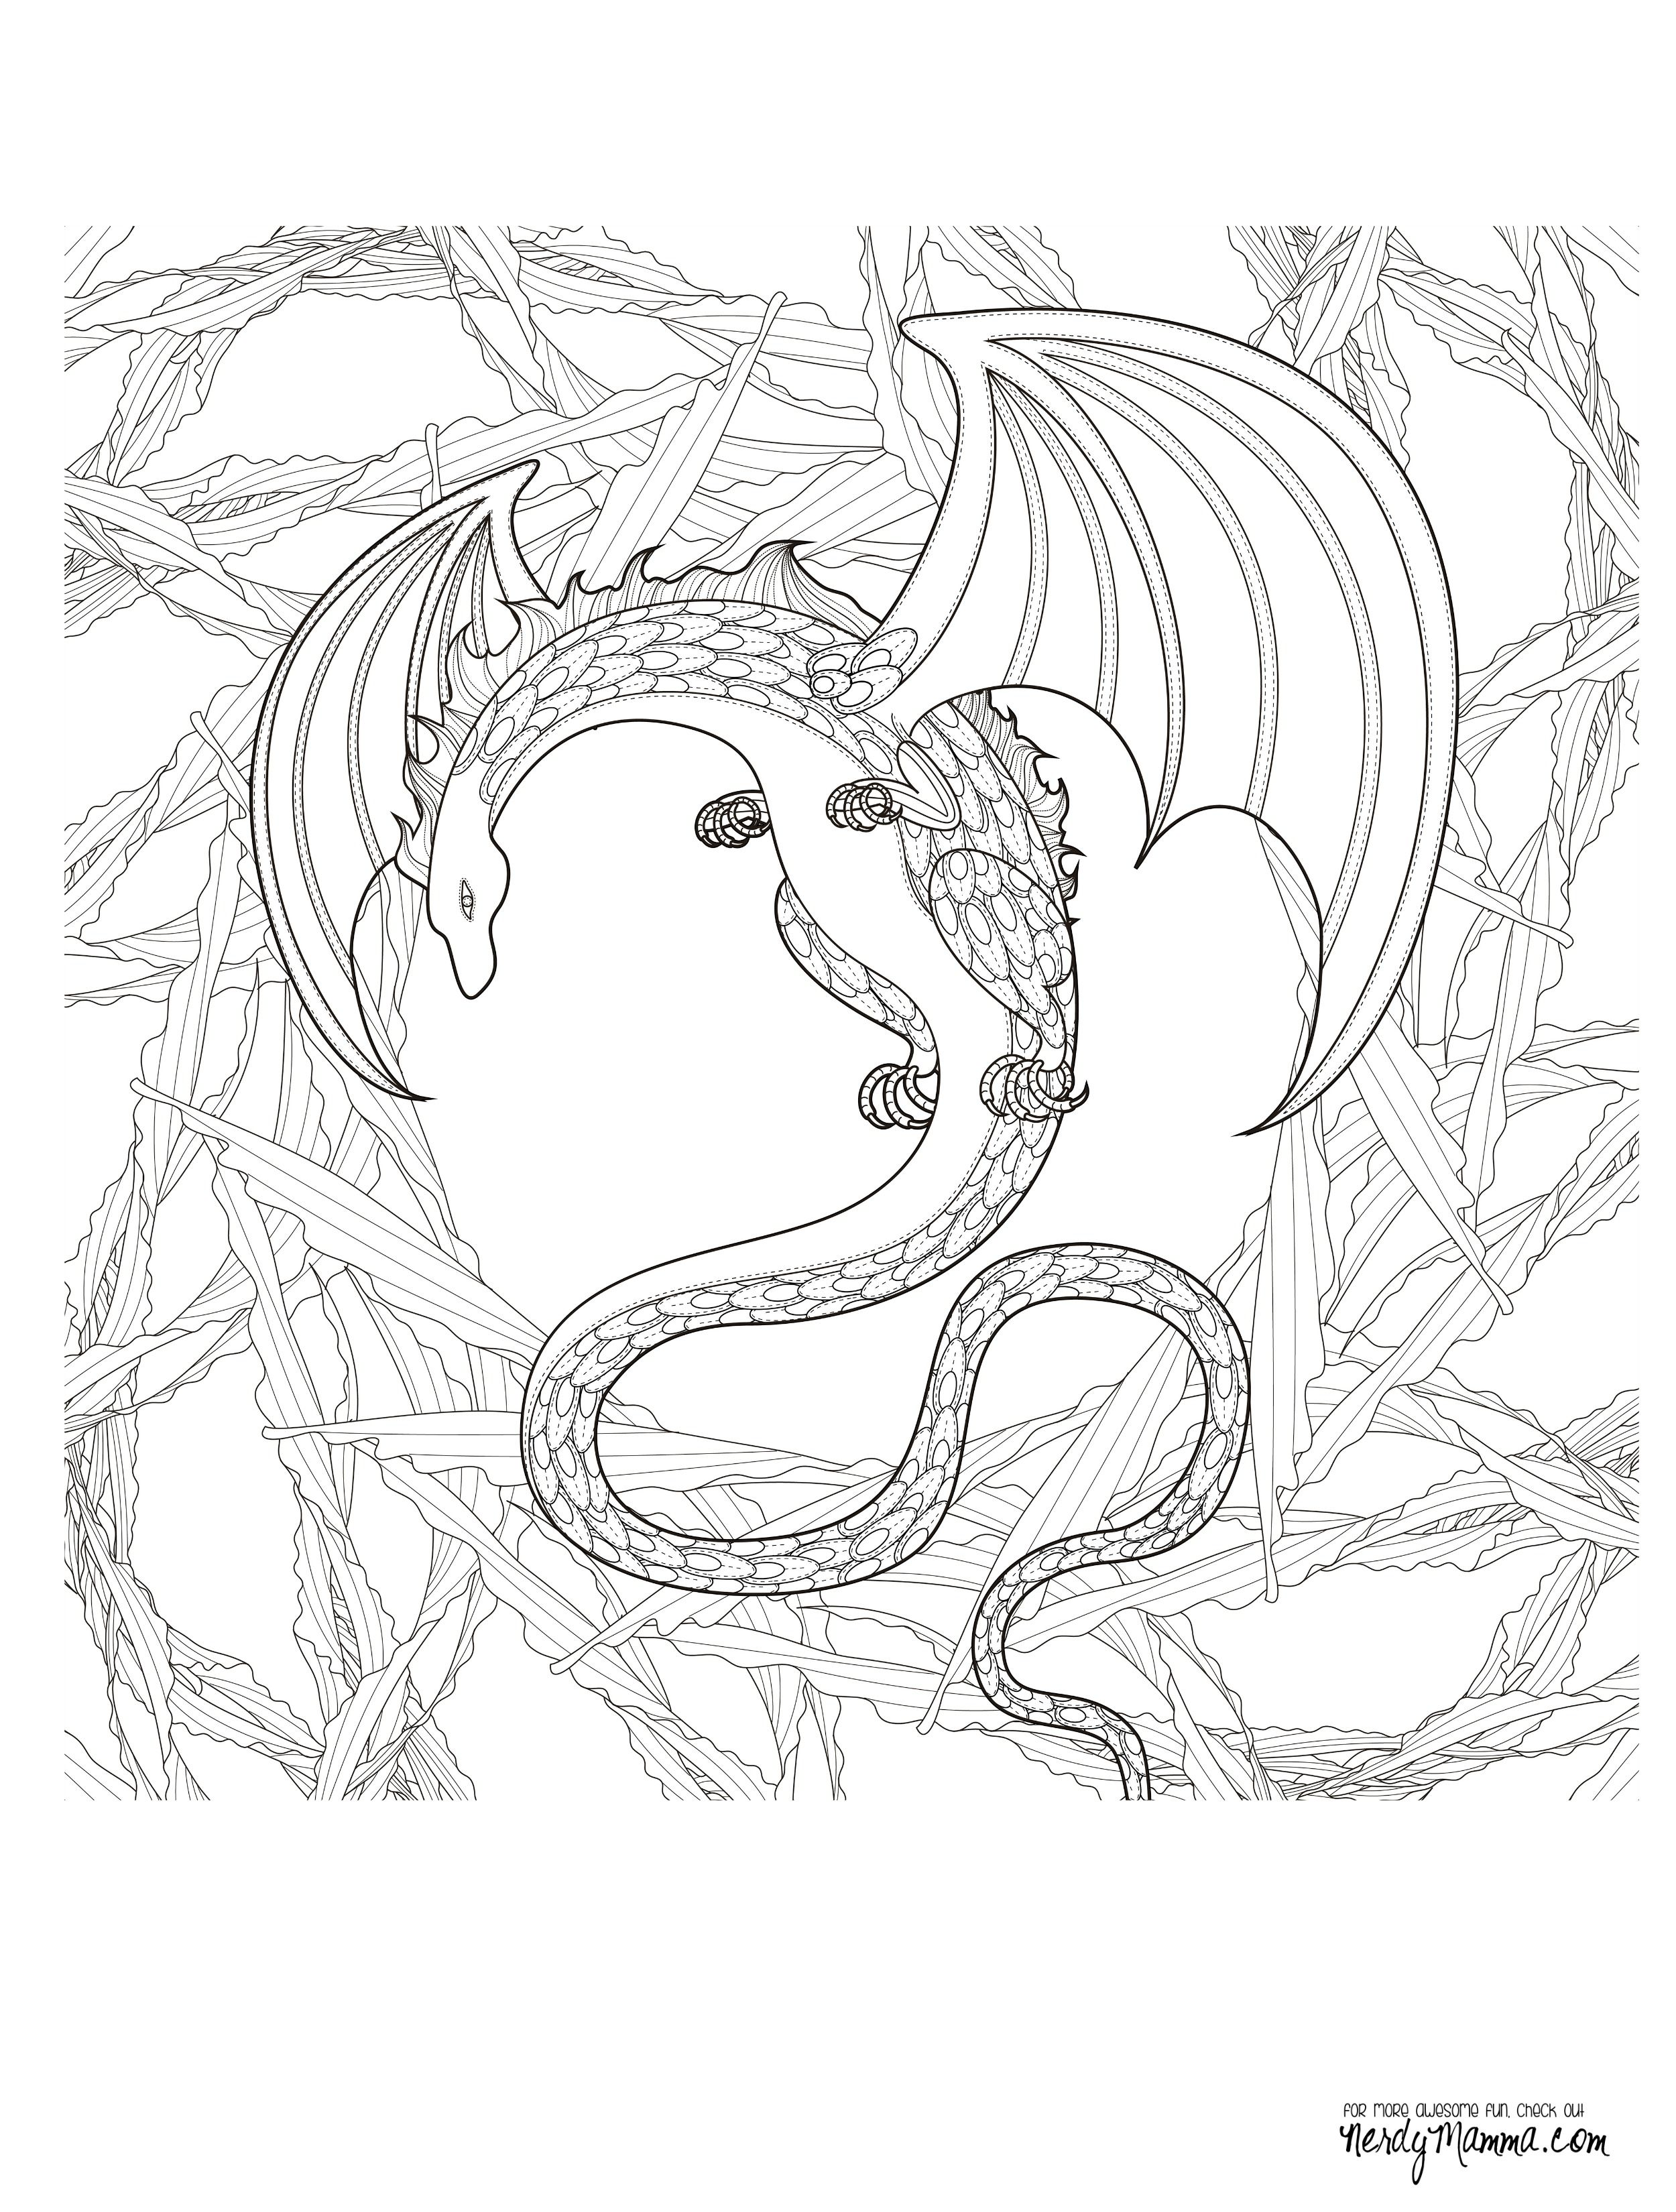 final dragon coloring page pic | coloring pages | Pinterest ...